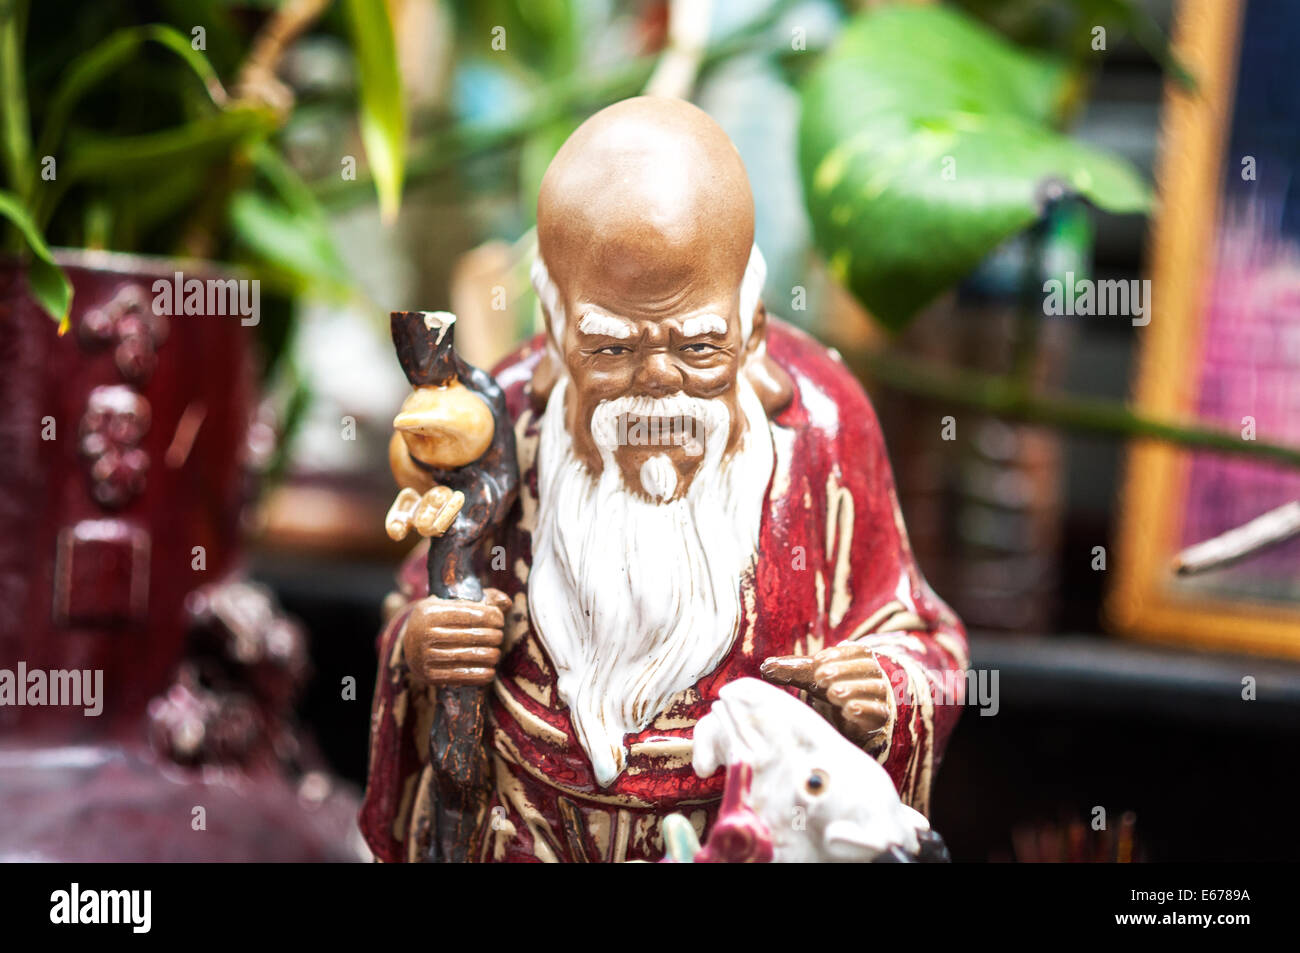 Statue of Shou Xing Gong the Chinese god of longevity - Stock Image